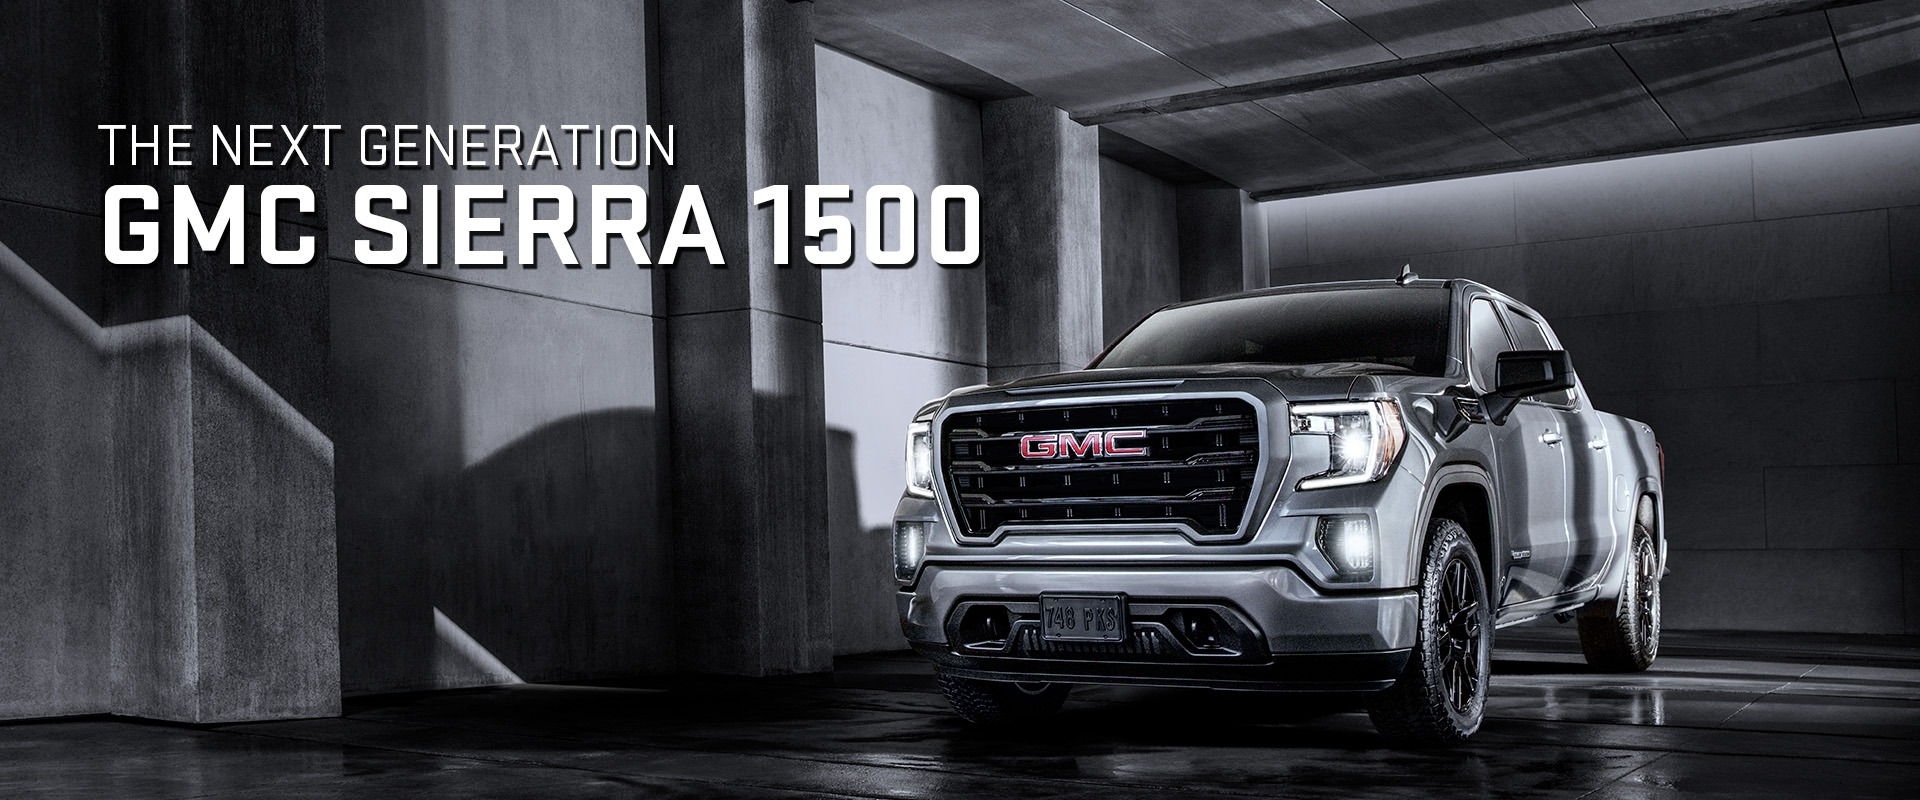 gmc sierra header